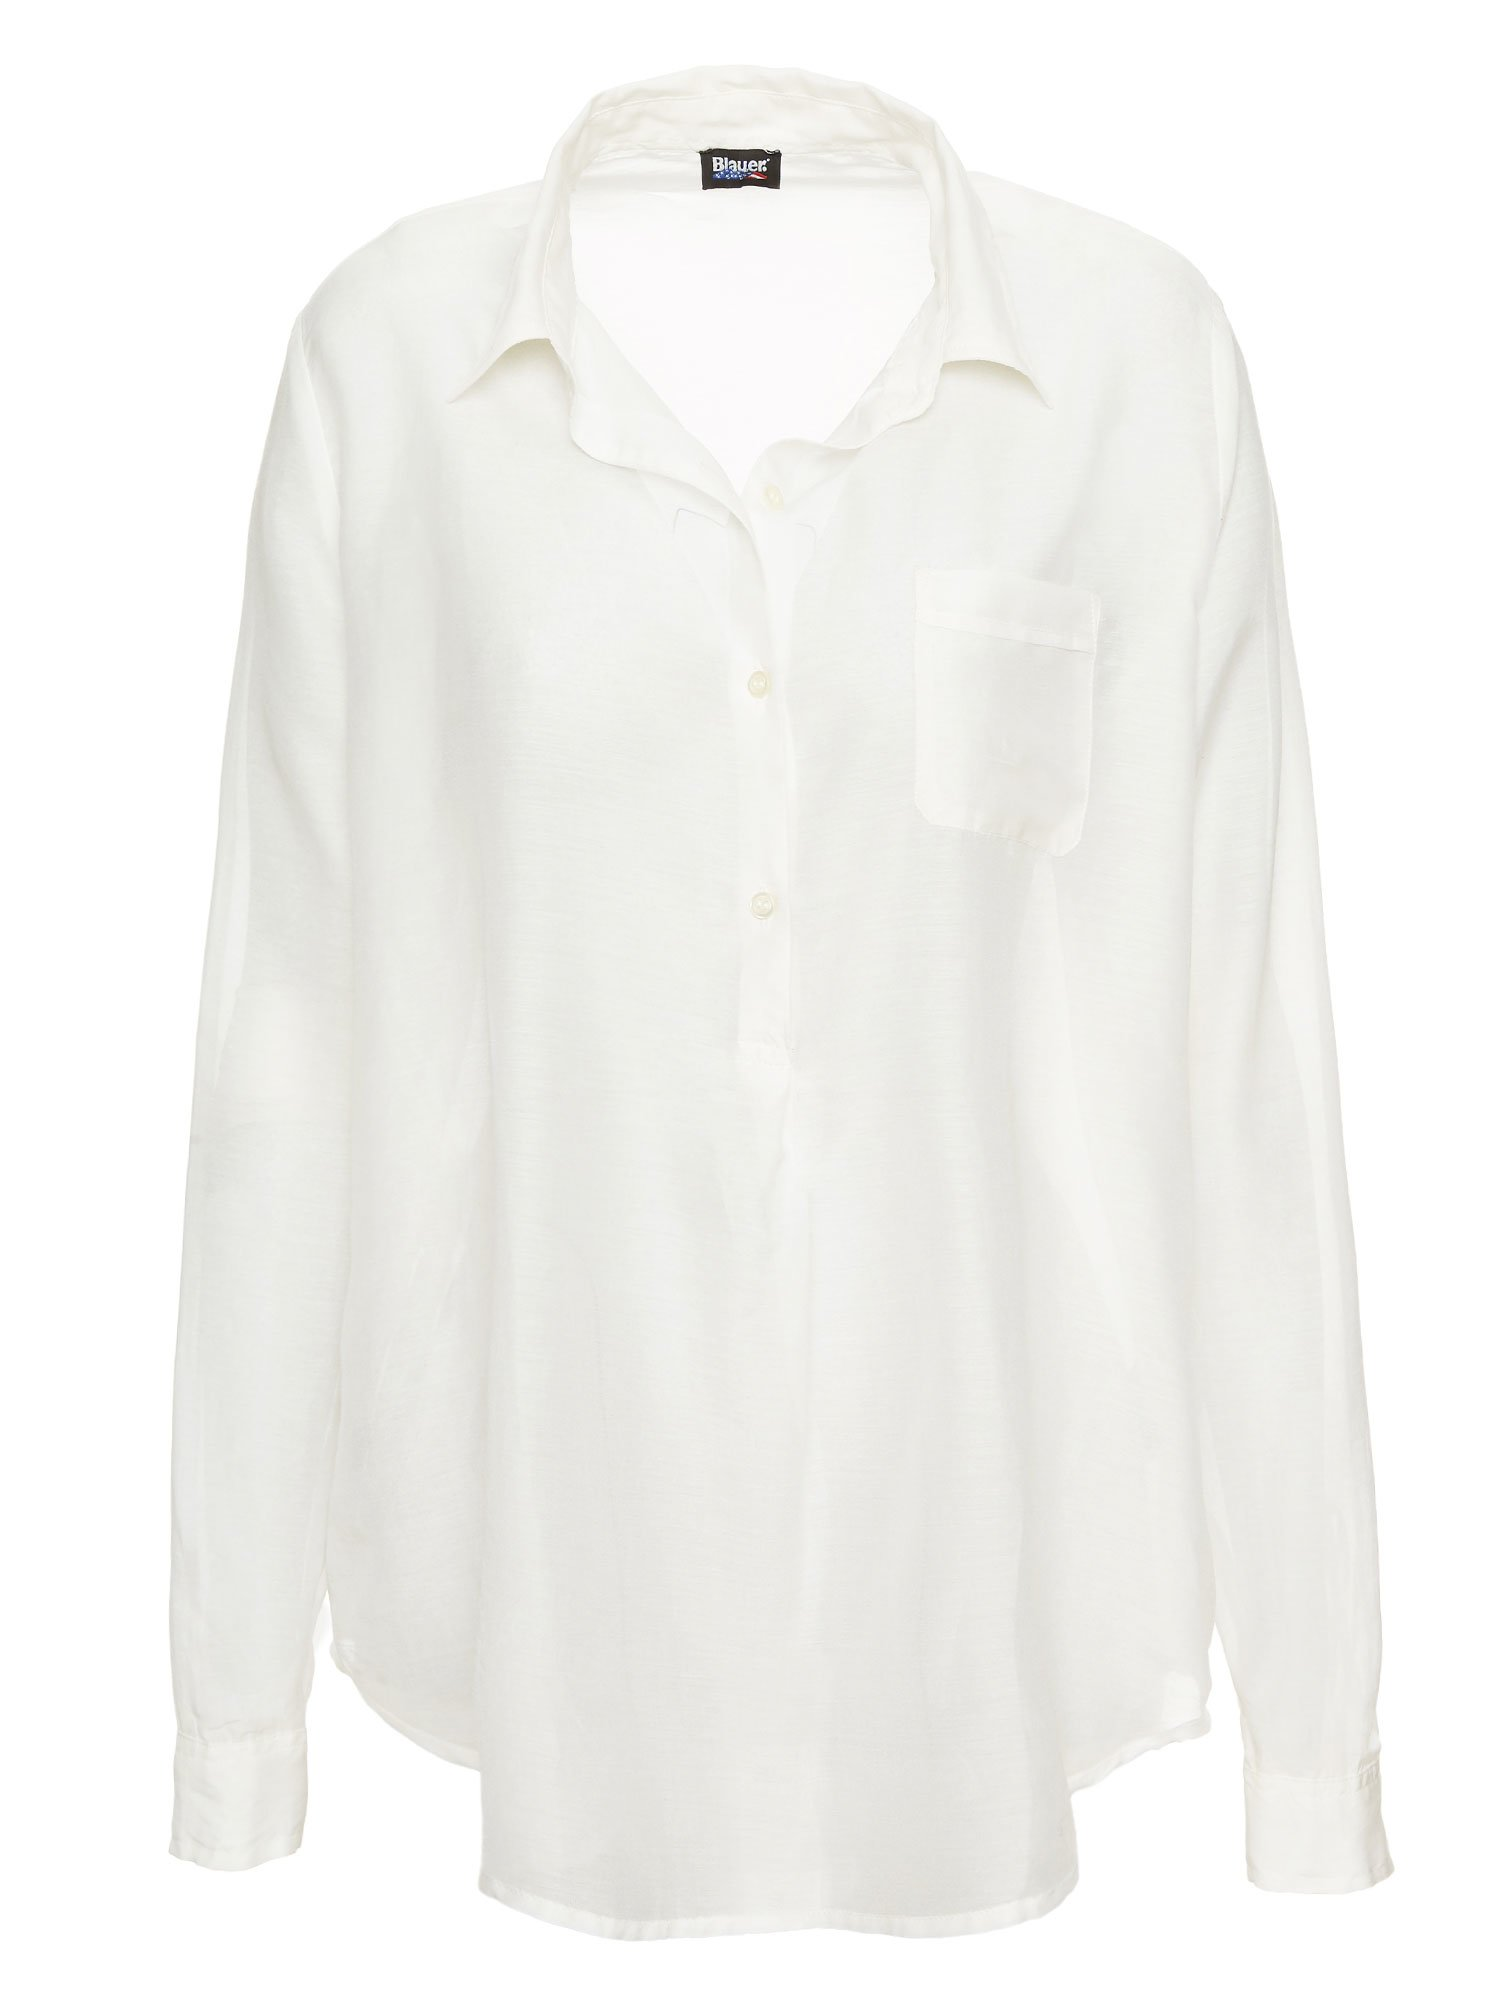 COTTON AND SILK VOILE SHIRT - Blauer